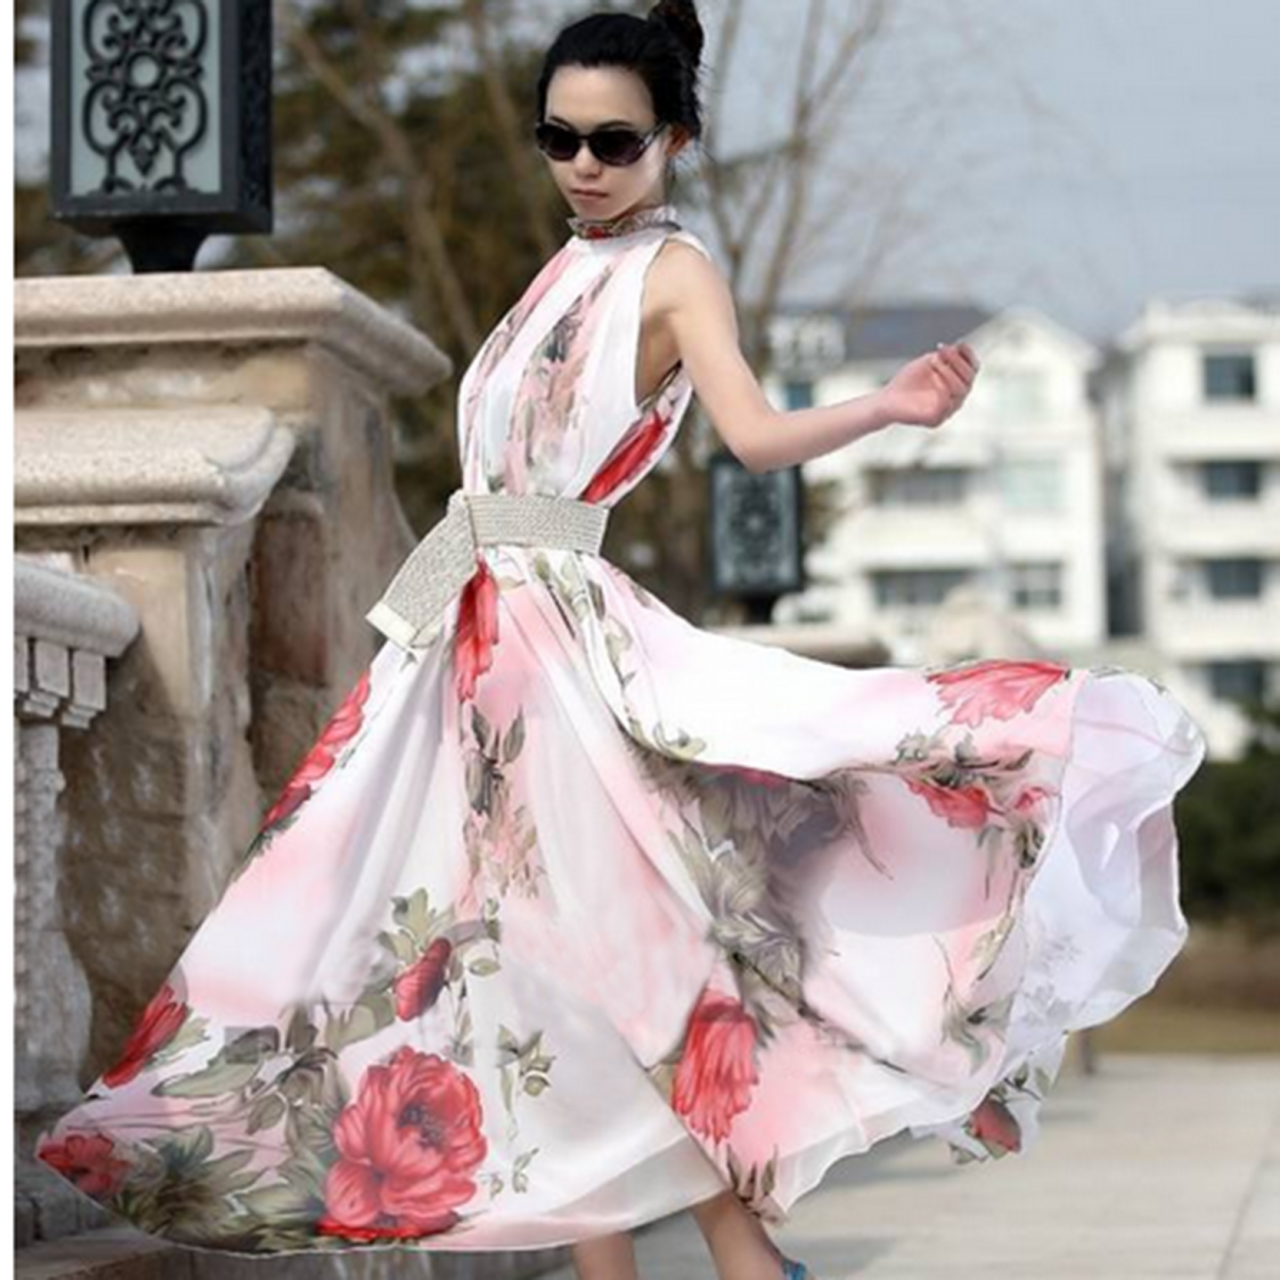 420fc9c2aaf47 Sexy Women s Maxi Sleeveless Floral Casual Summer Beach Party Long Chiffon  Dress